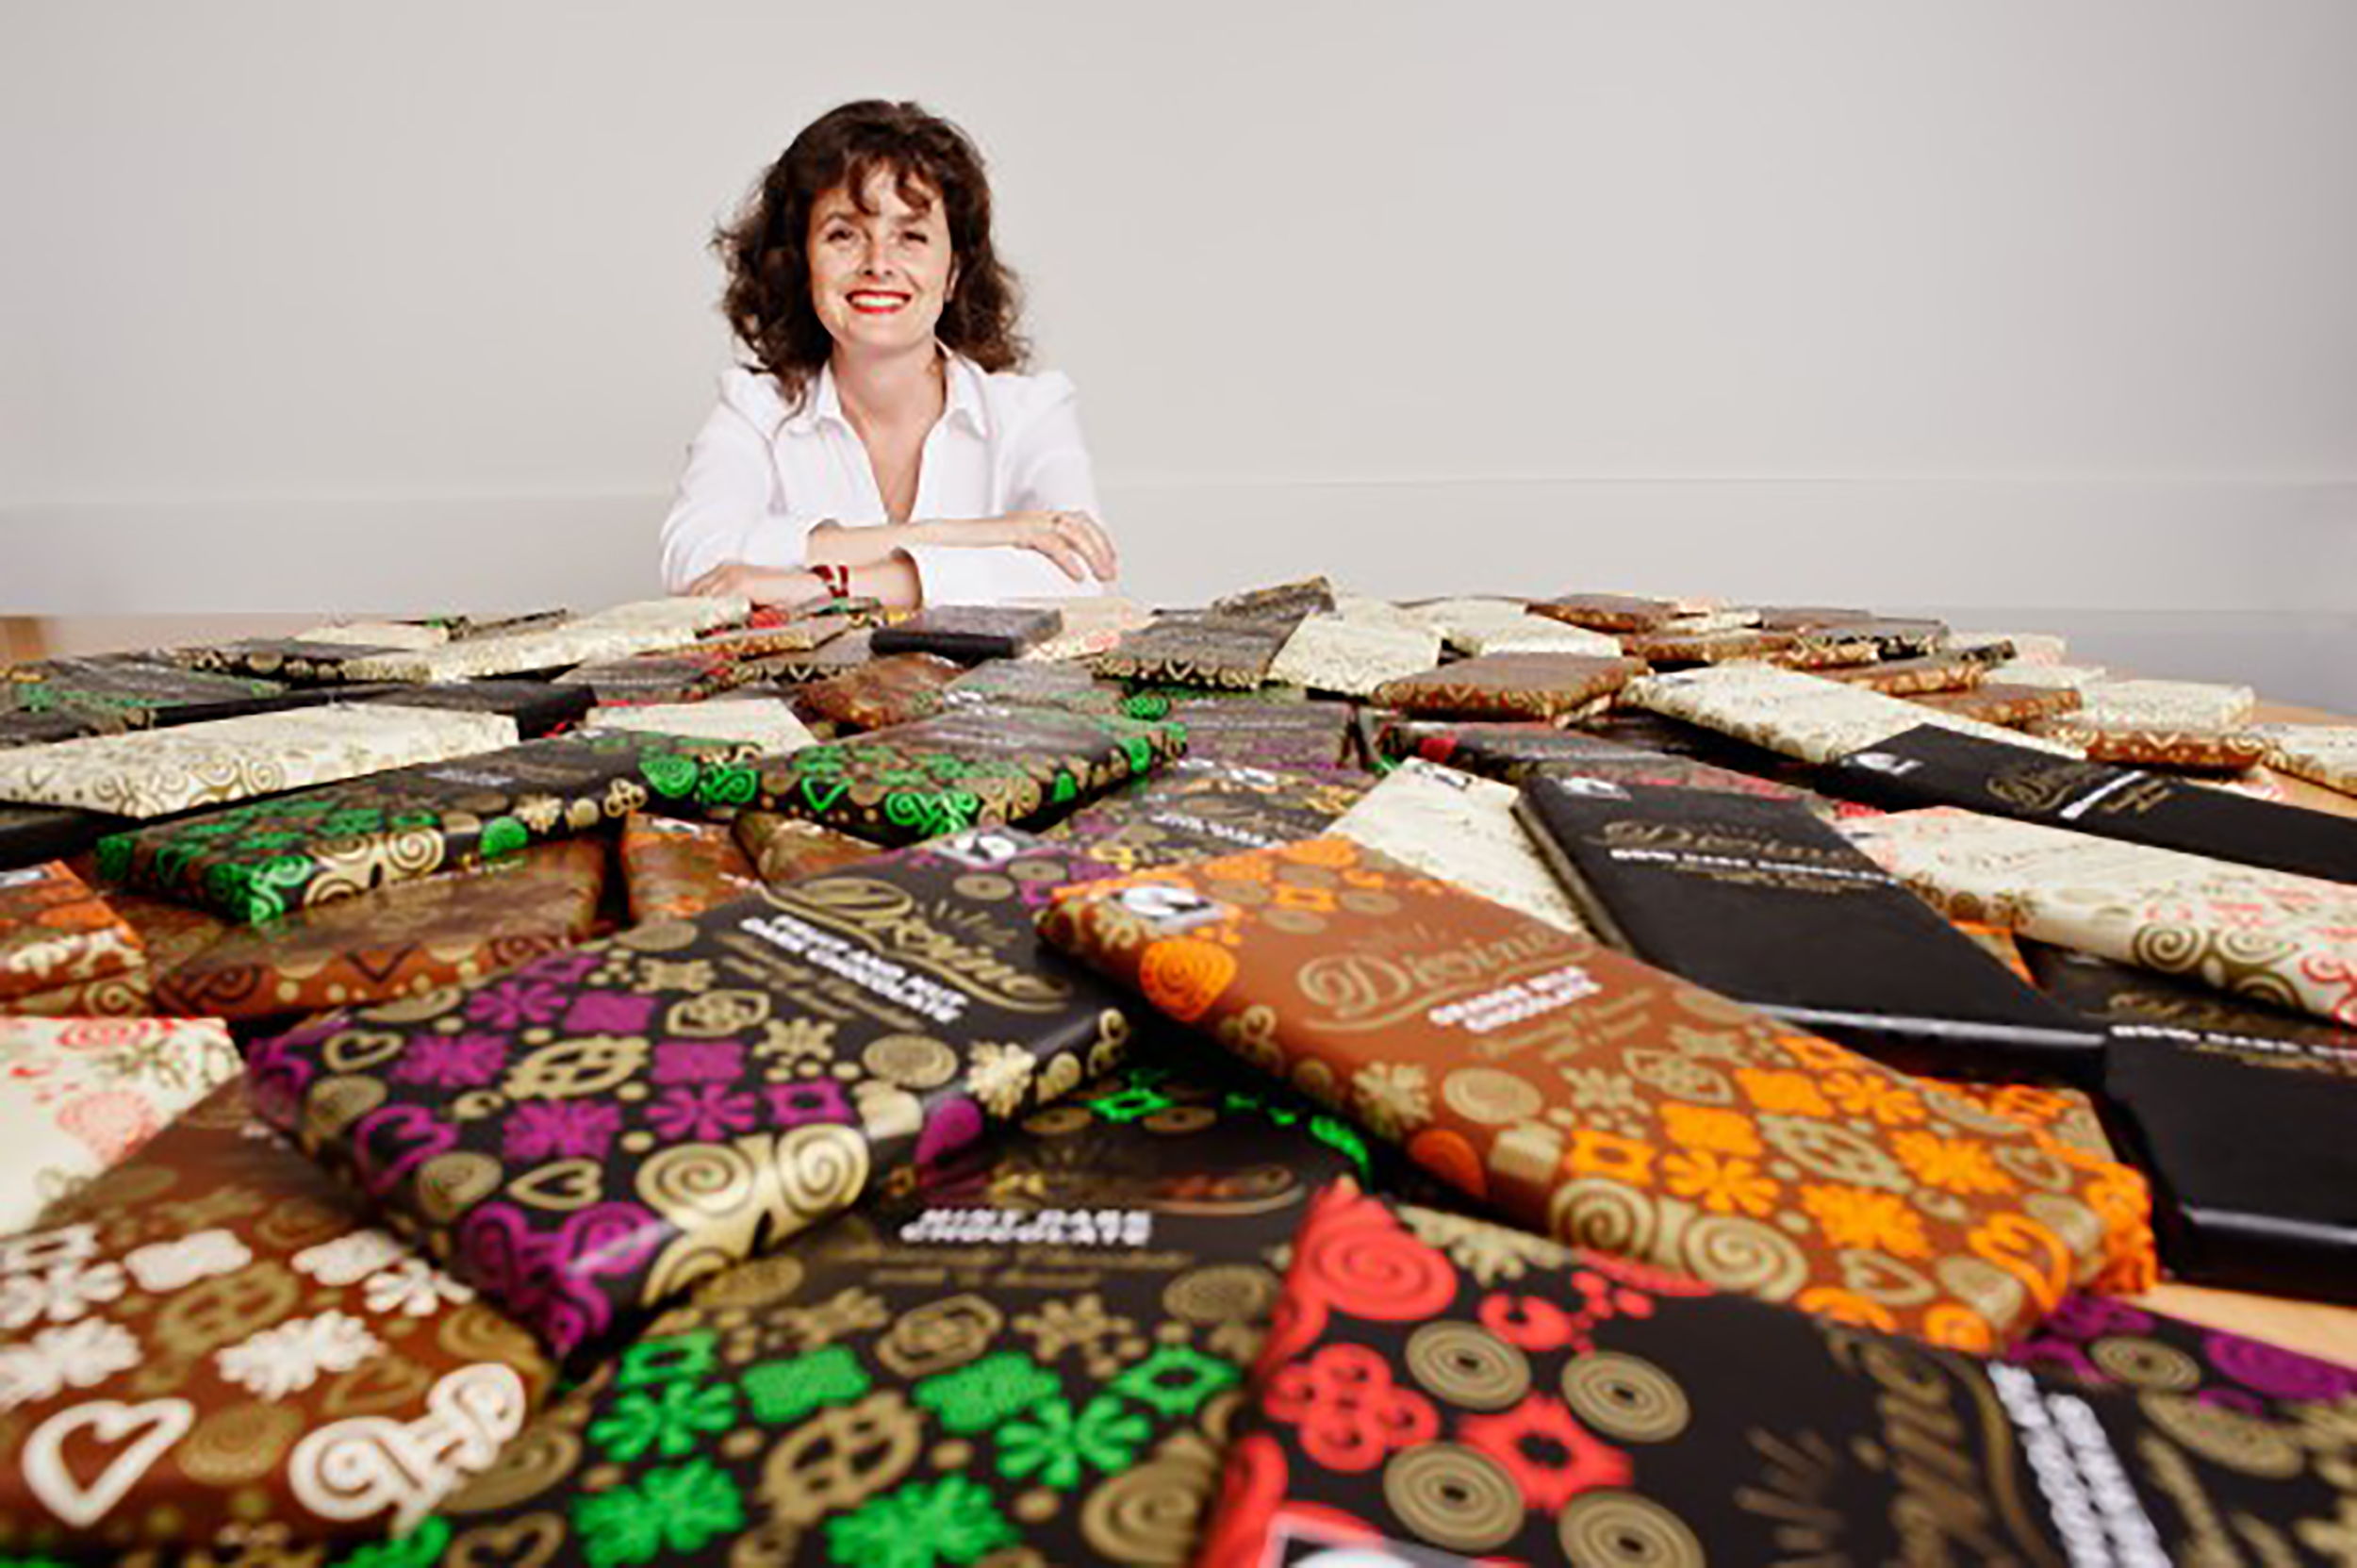 Divine Chocolate chief executive shares her thoughts on attending ...